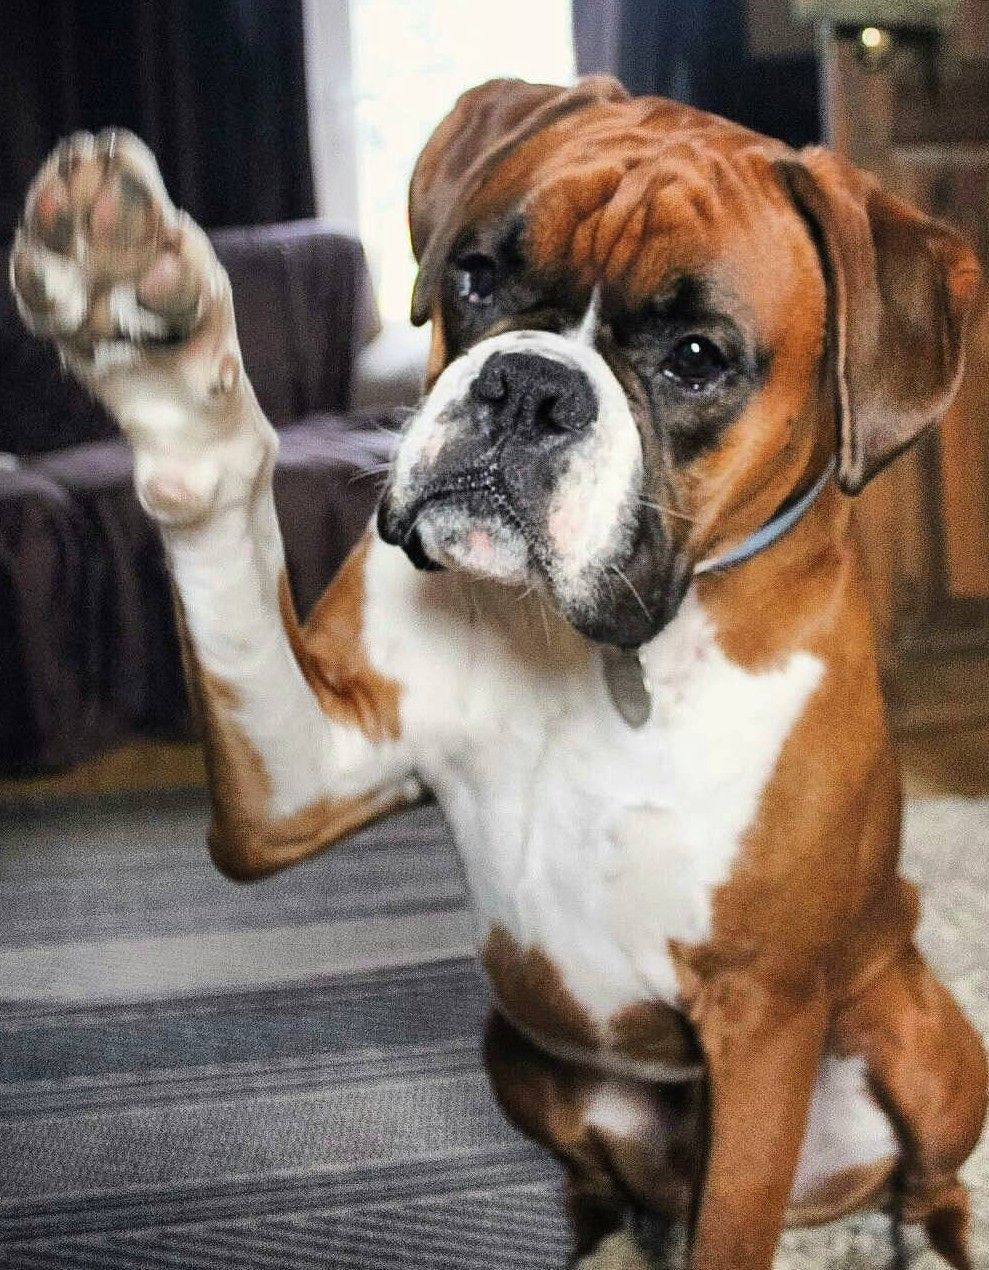 Pin By Angela Peppin On Boxer Love In 2020 Boxer Dog Puppy Boxer Dogs Funny Boxer Dog Breed